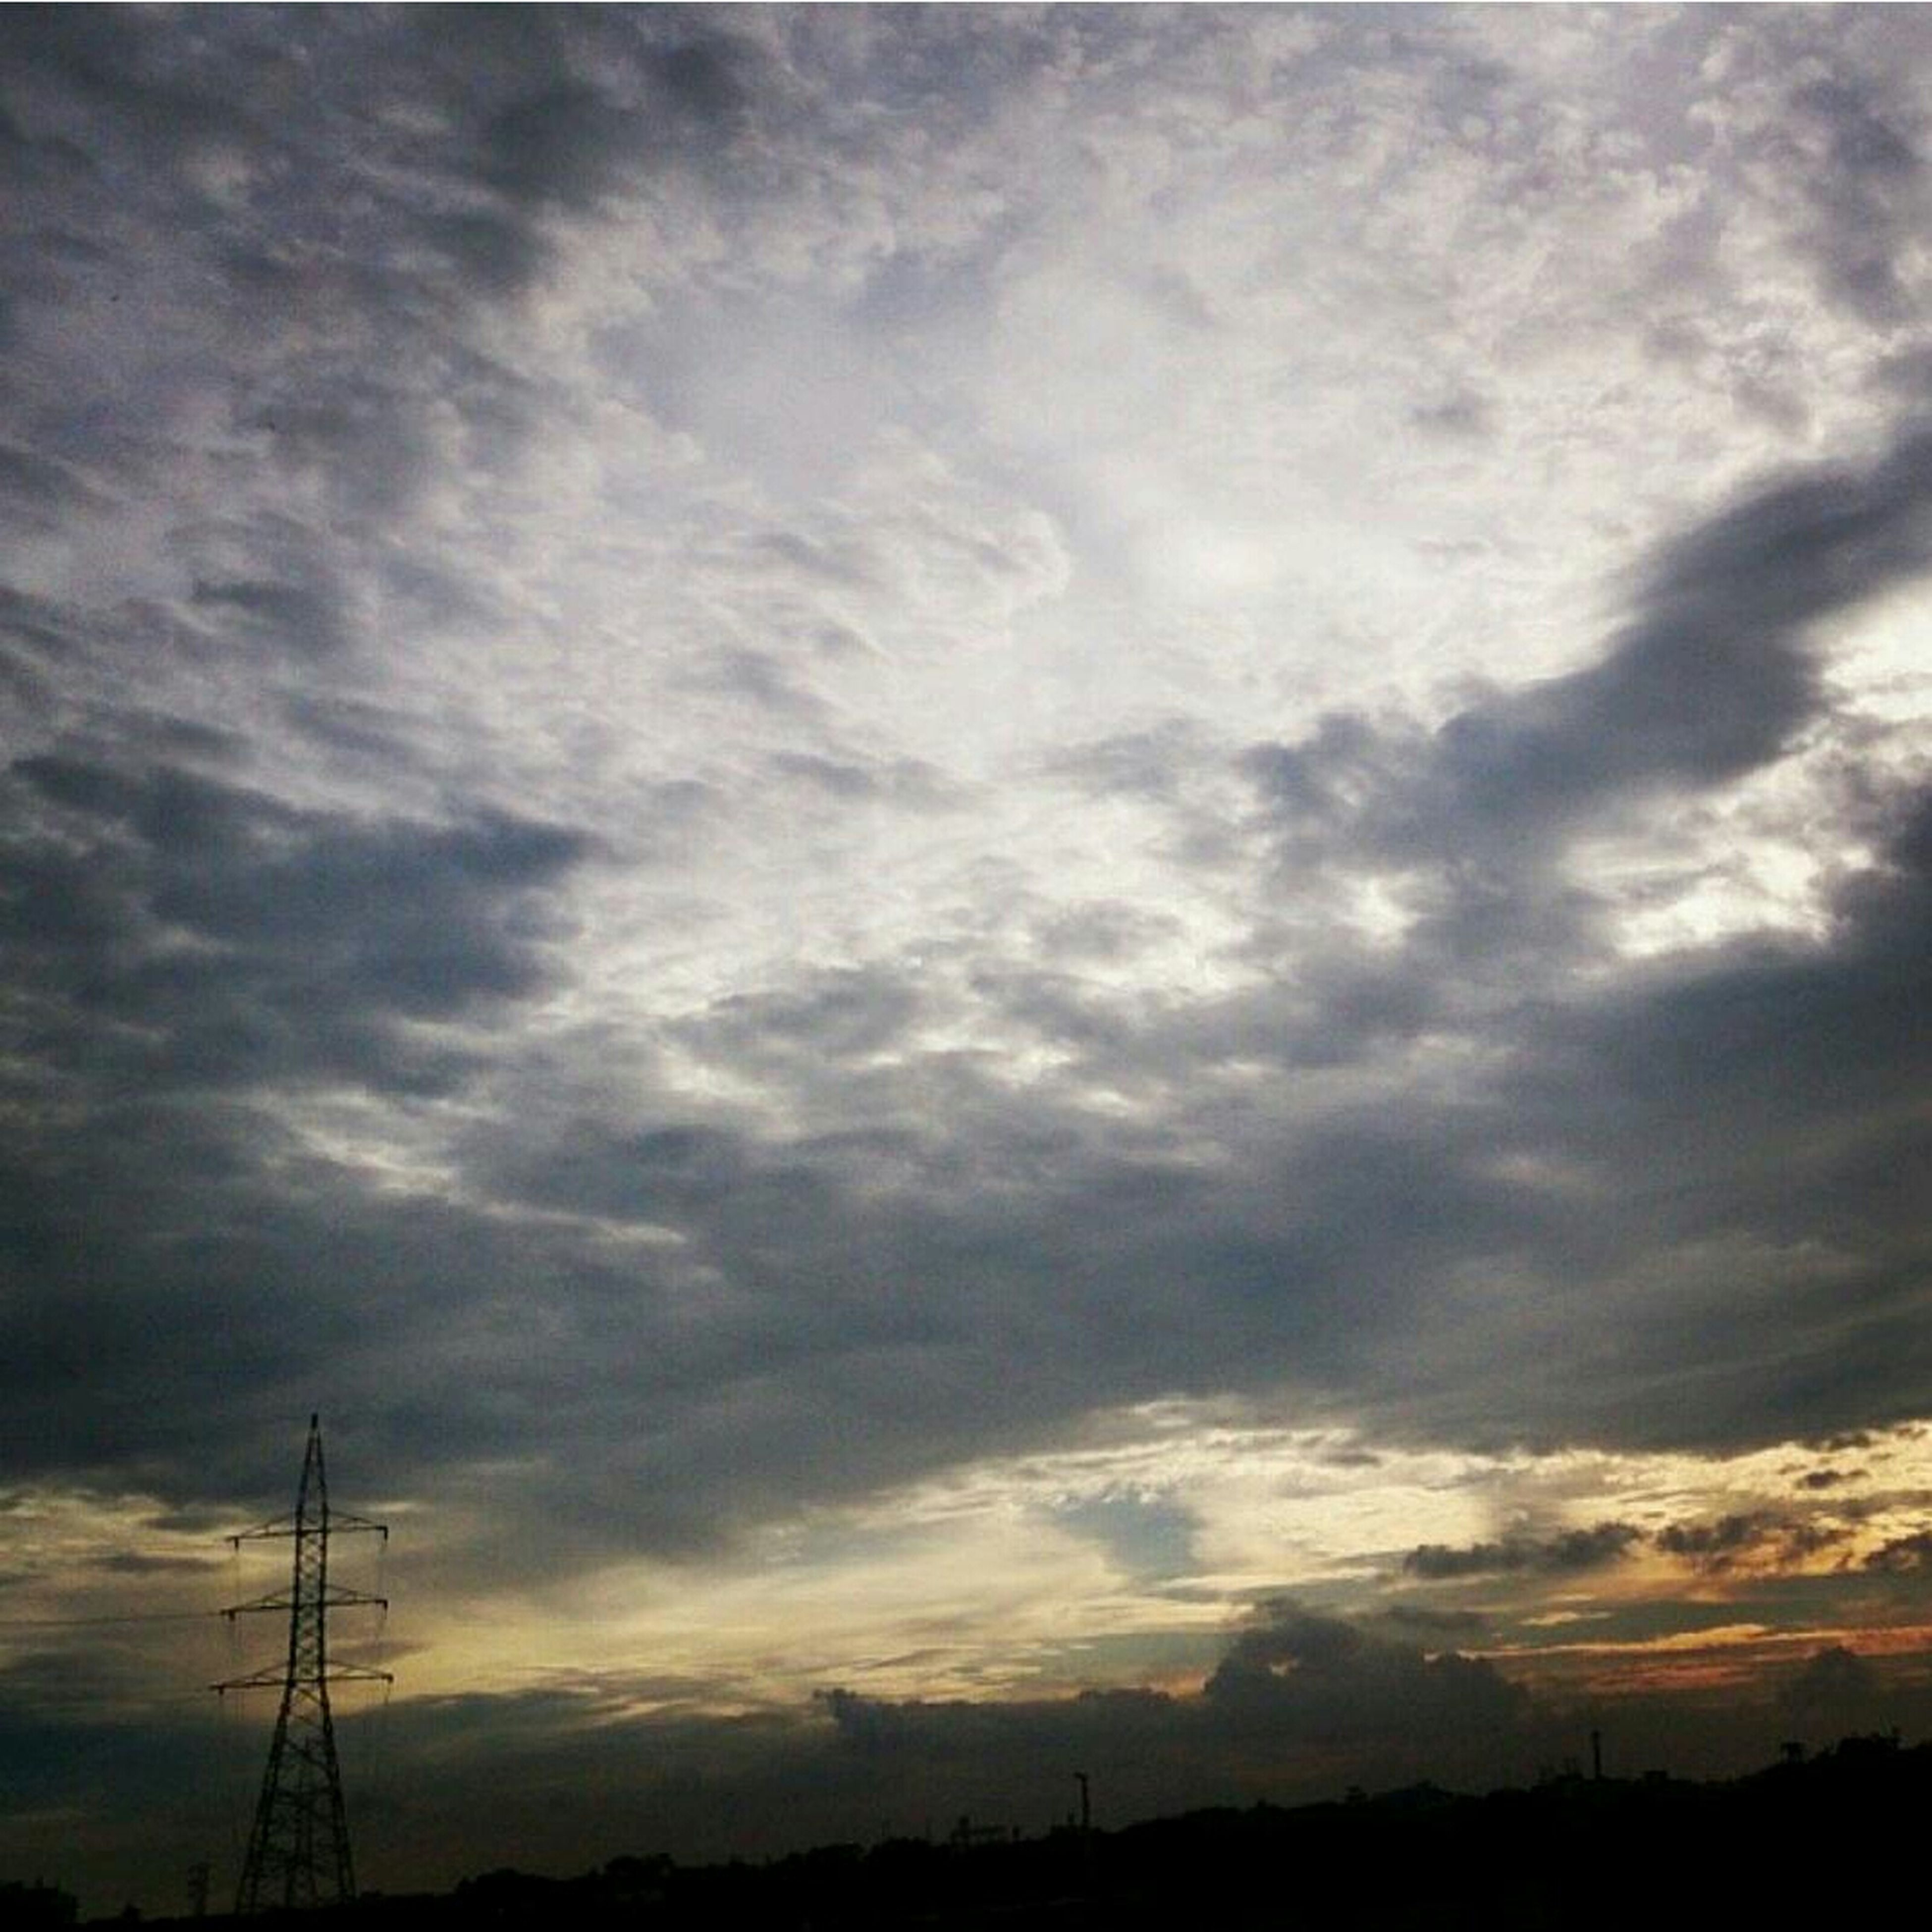 sky, silhouette, electricity pylon, power line, low angle view, sunset, cloud - sky, electricity, power supply, tranquility, scenics, beauty in nature, connection, cloudy, fuel and power generation, tranquil scene, cable, nature, technology, cloud